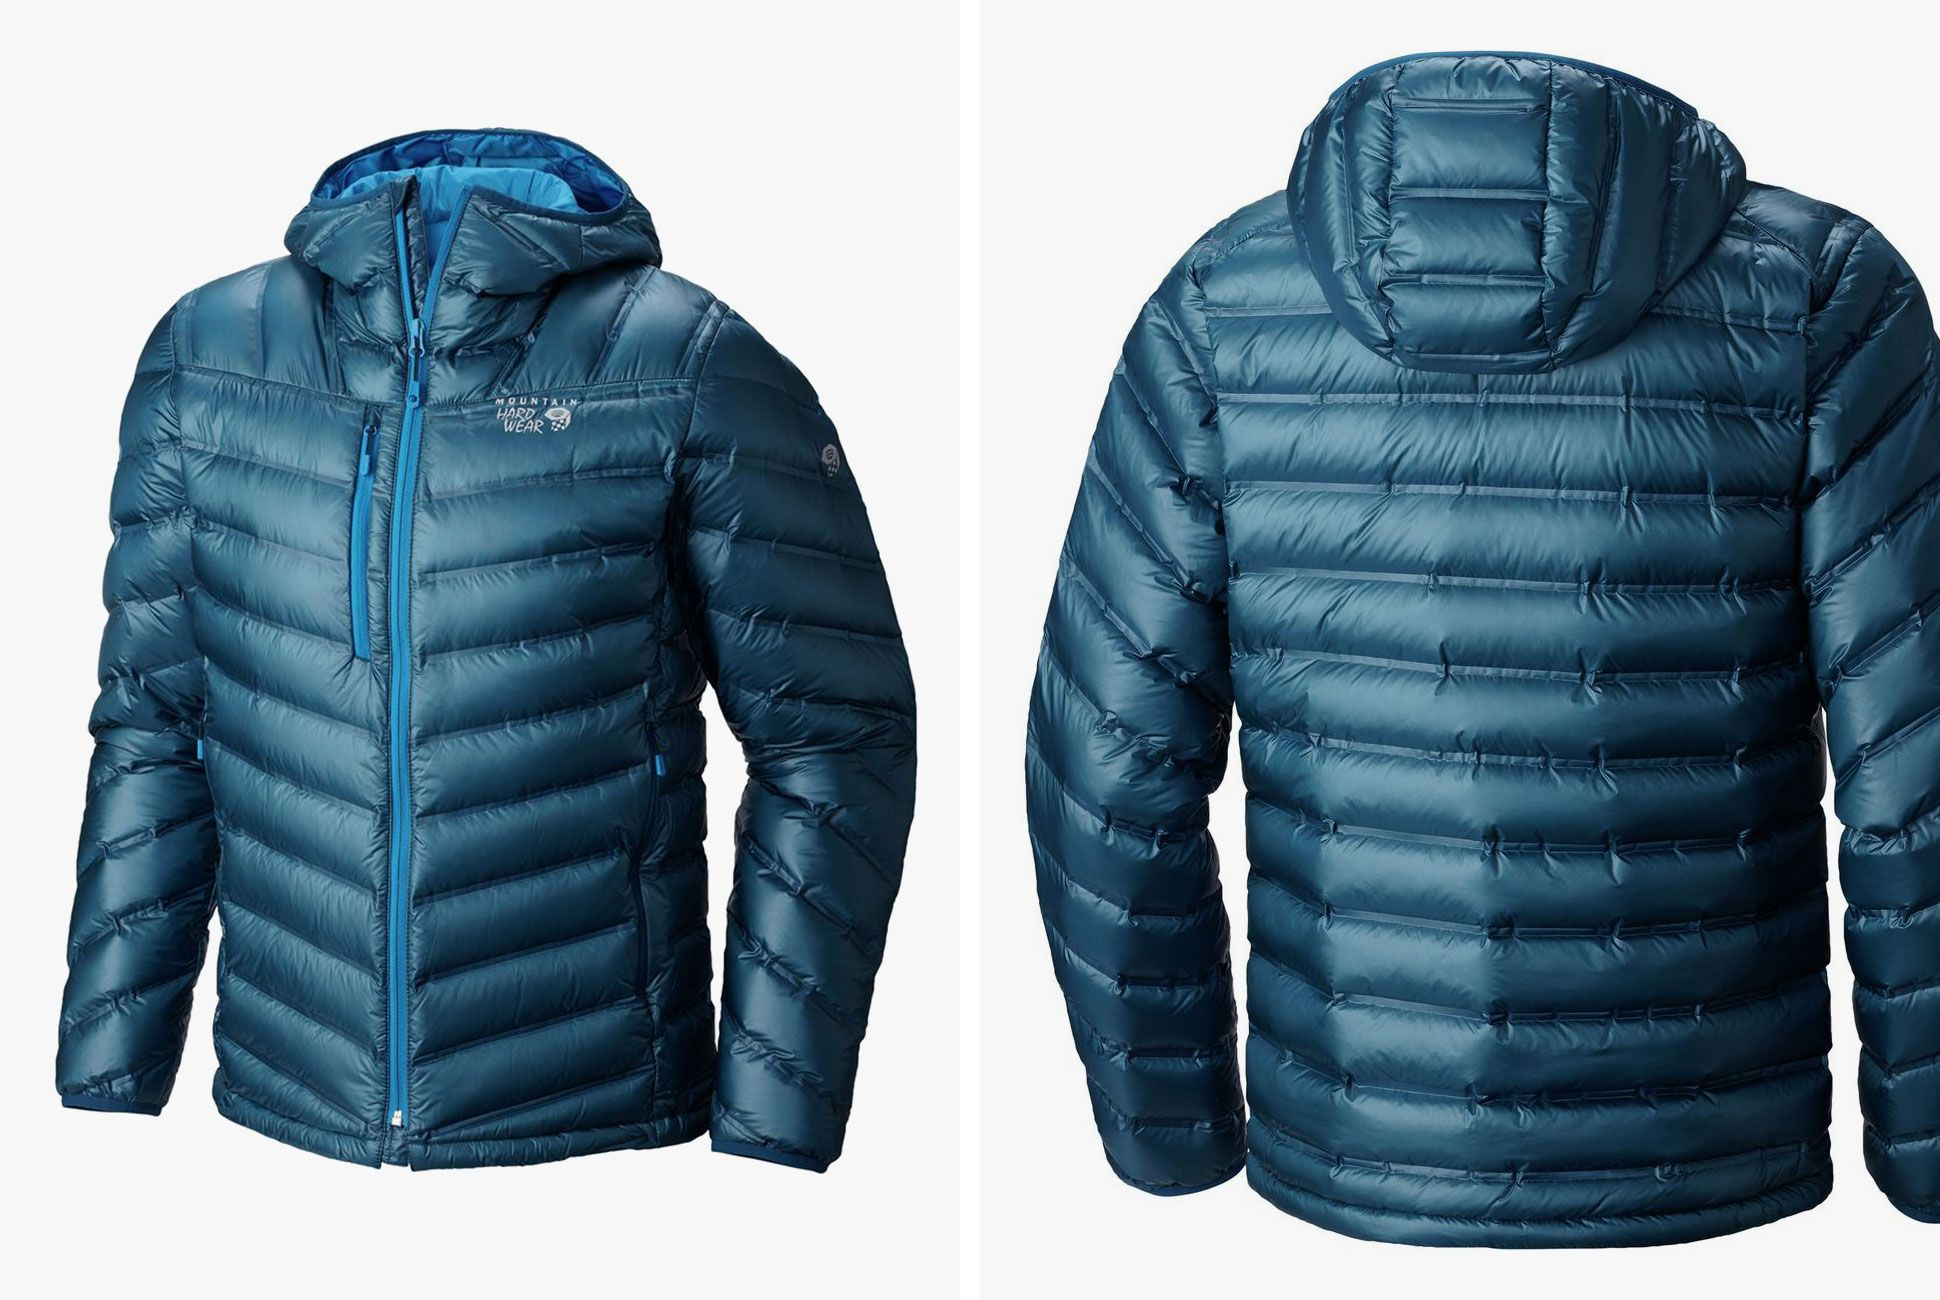 8 Best Down Jackets of 2016